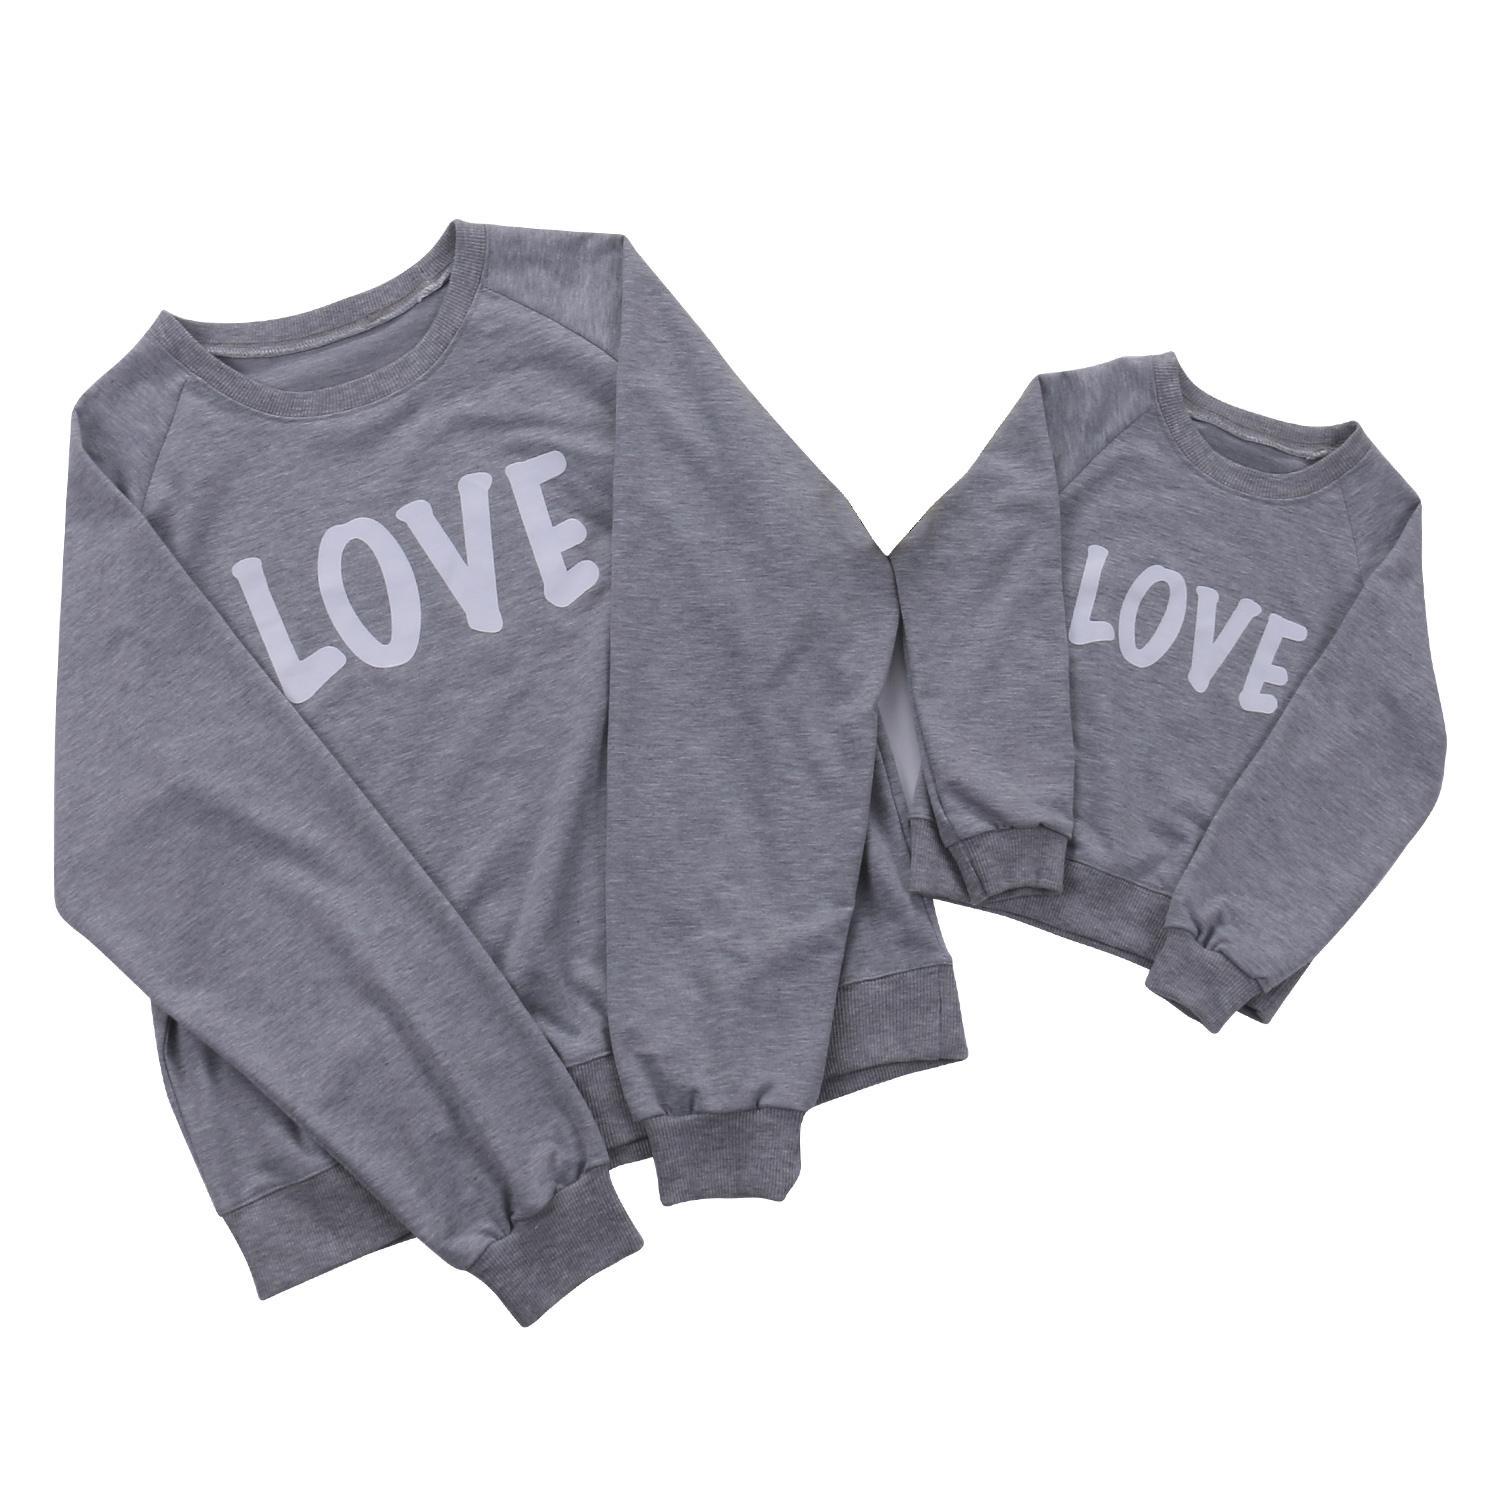 2018 Hot Family Costume Cotton Letter T-Shirt Love Mother Son Daughter Family Outfit Clo ...